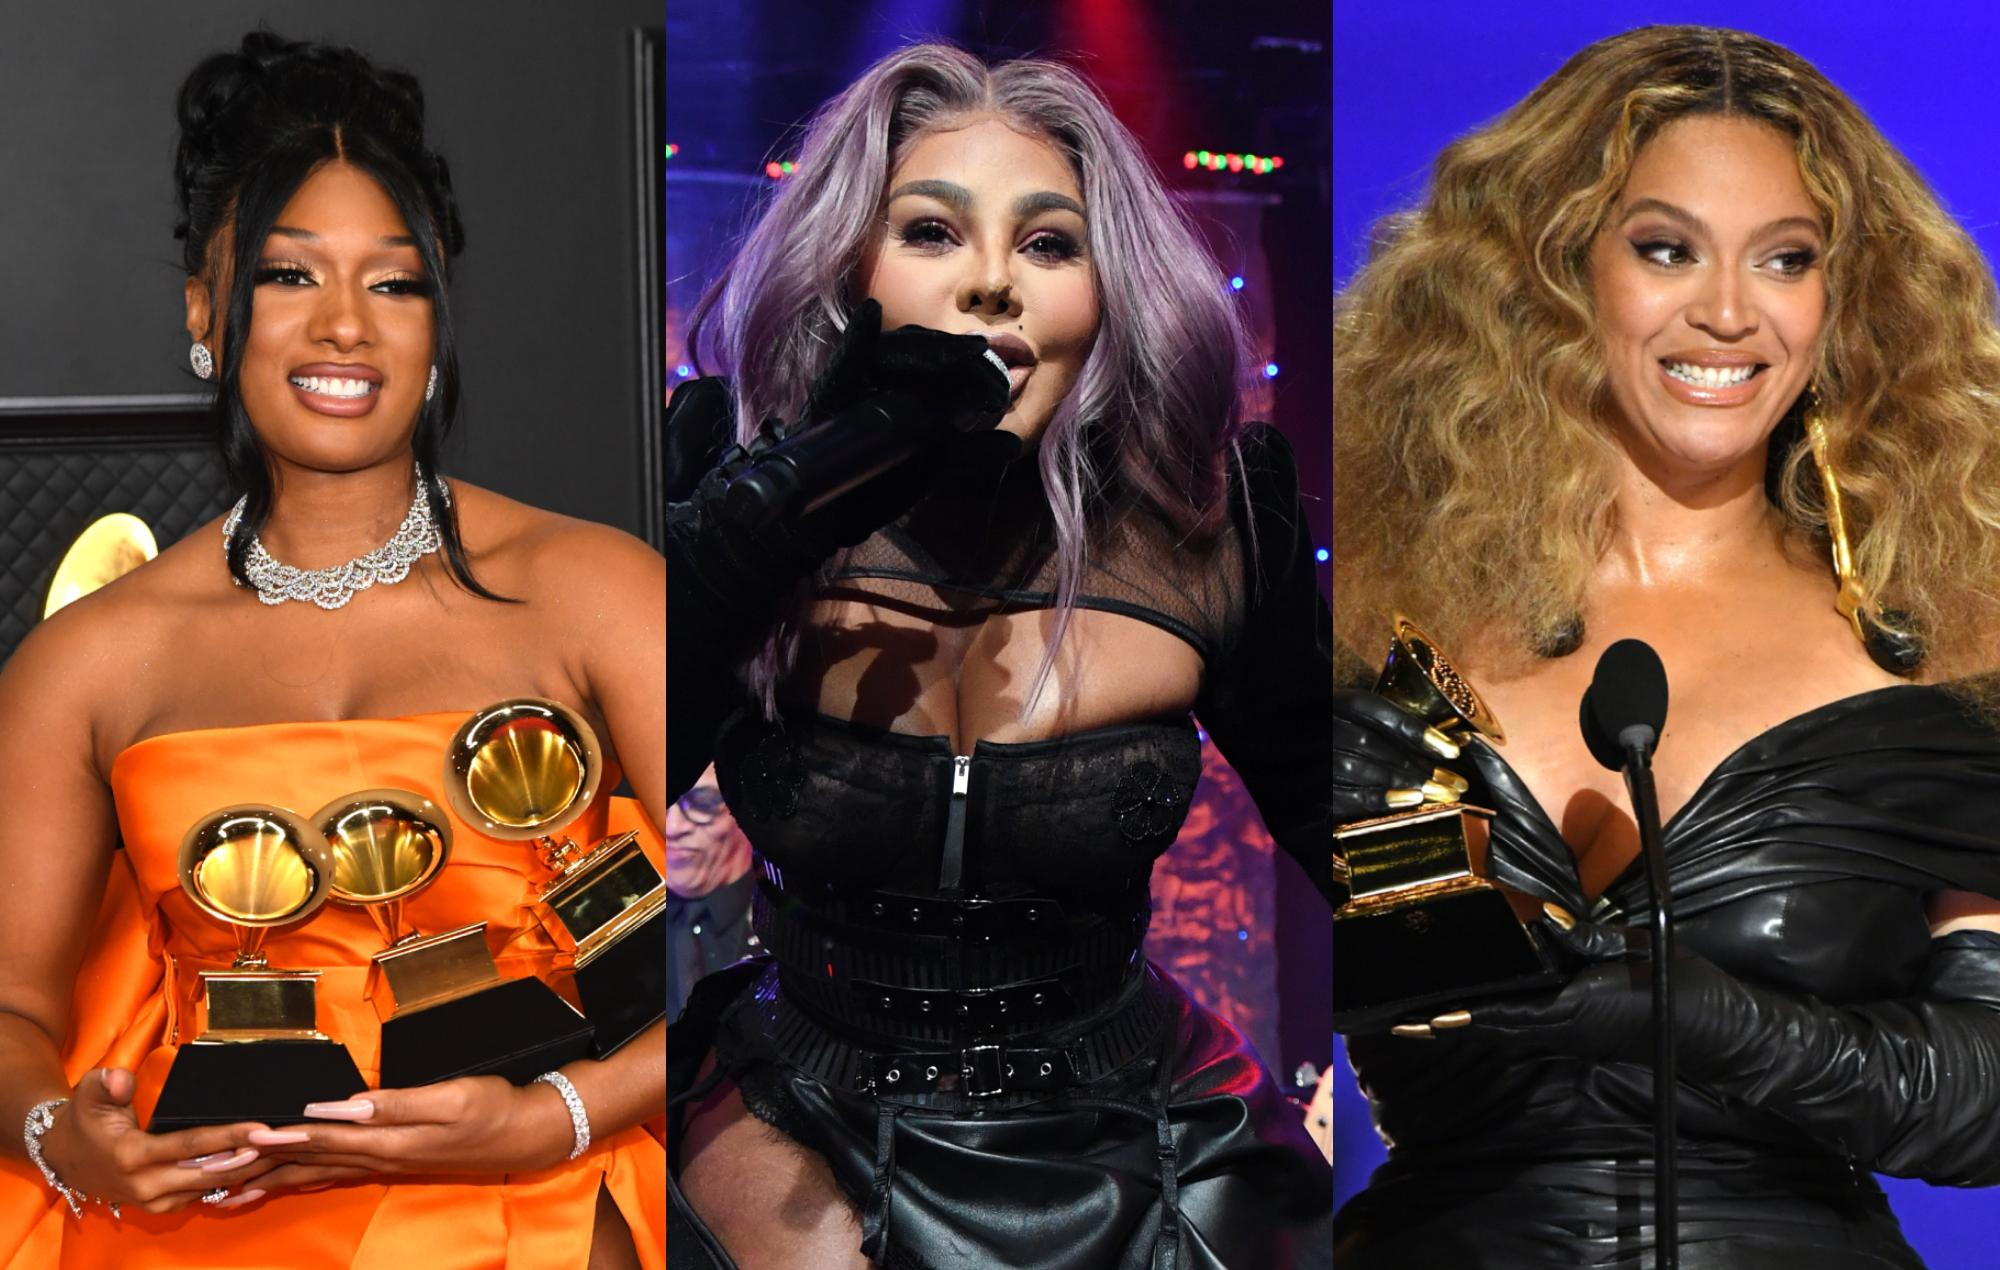 Lil' Kim congratulates Beyonc and Megan Thee Stallion on historic Grammy wins